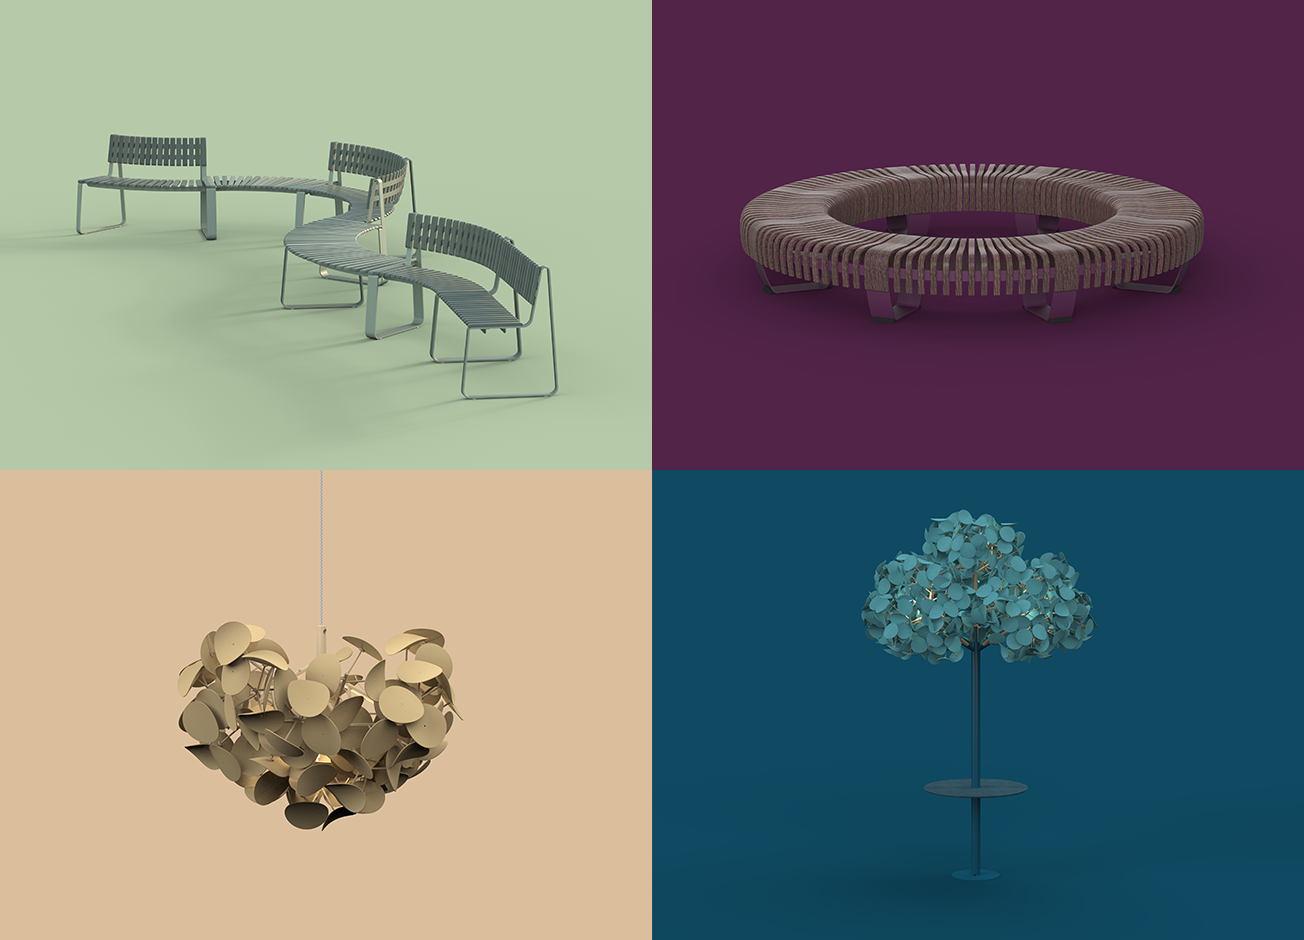 September 2018  Green Furniture Concepts Spring/Summer 2019 Palette   From bold, uplifting tones, to soothing, natural shades, Green Furniture Concepts colours for Spring/Summer 2019 capture the vitality of the seasons to come. Each of these eye-catching tones reflects an aspect of nature that individuals take to heart.